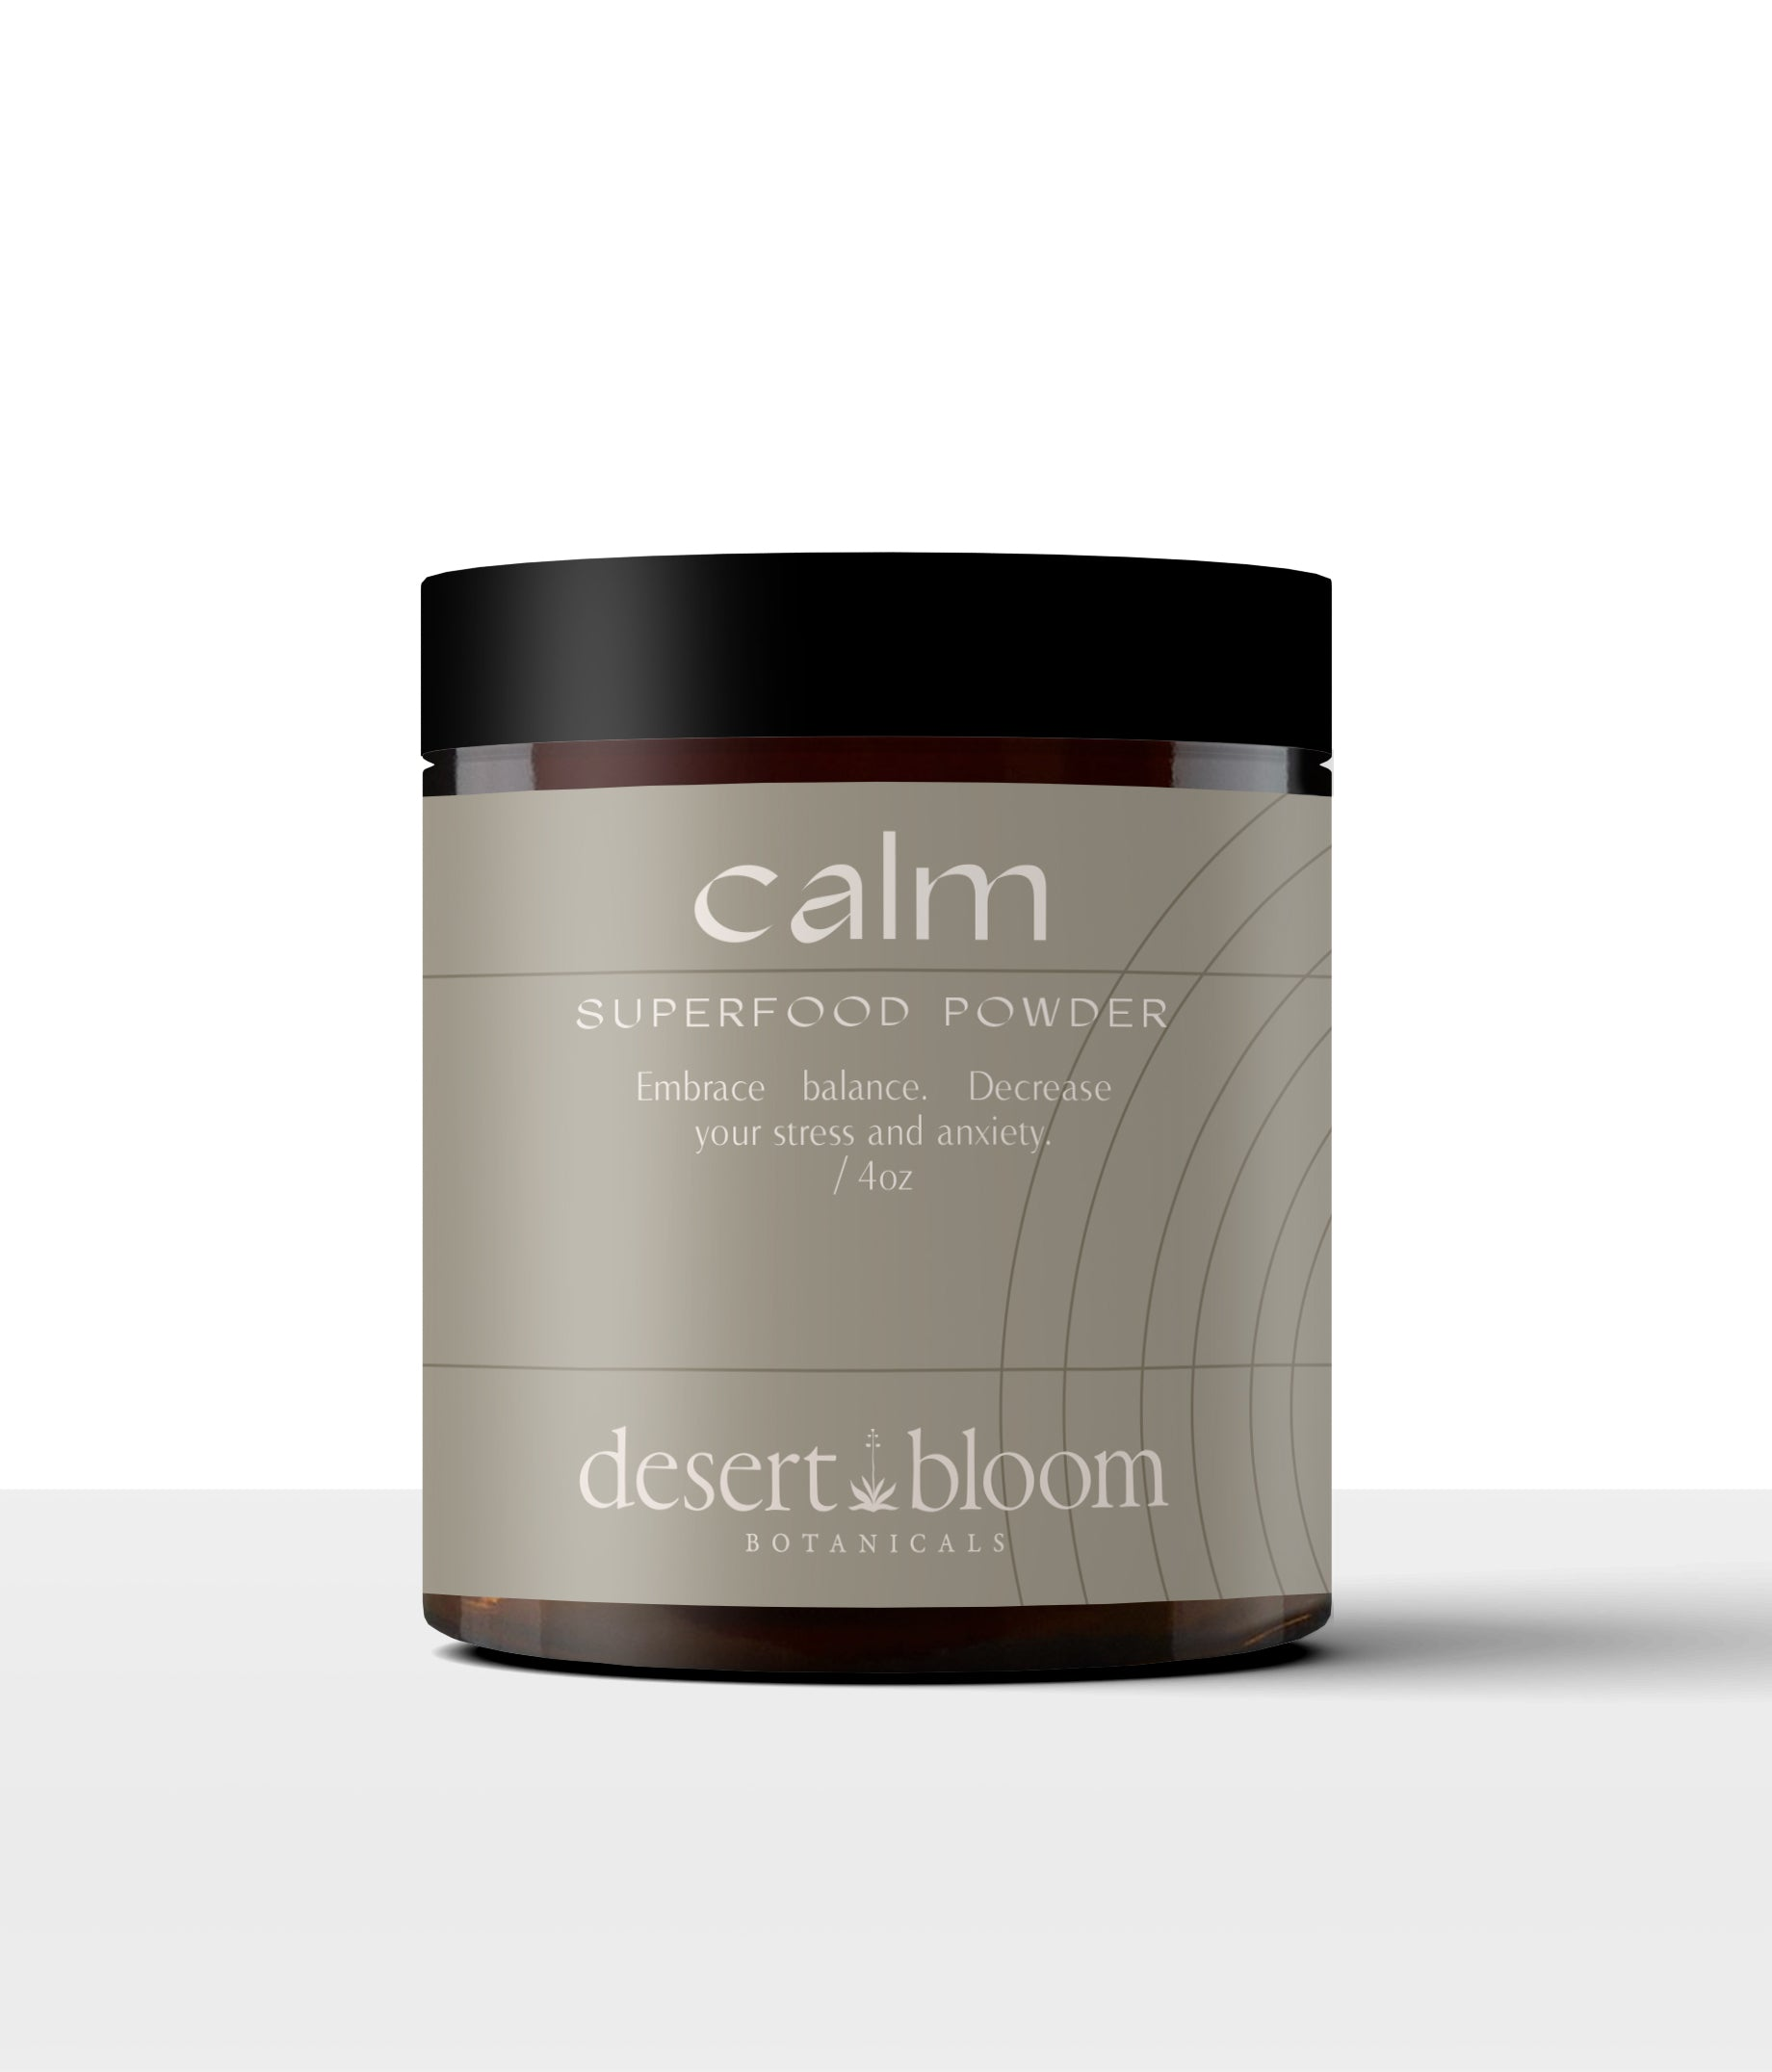 Calm Superfood Powder - Desert Bloom Botanicals